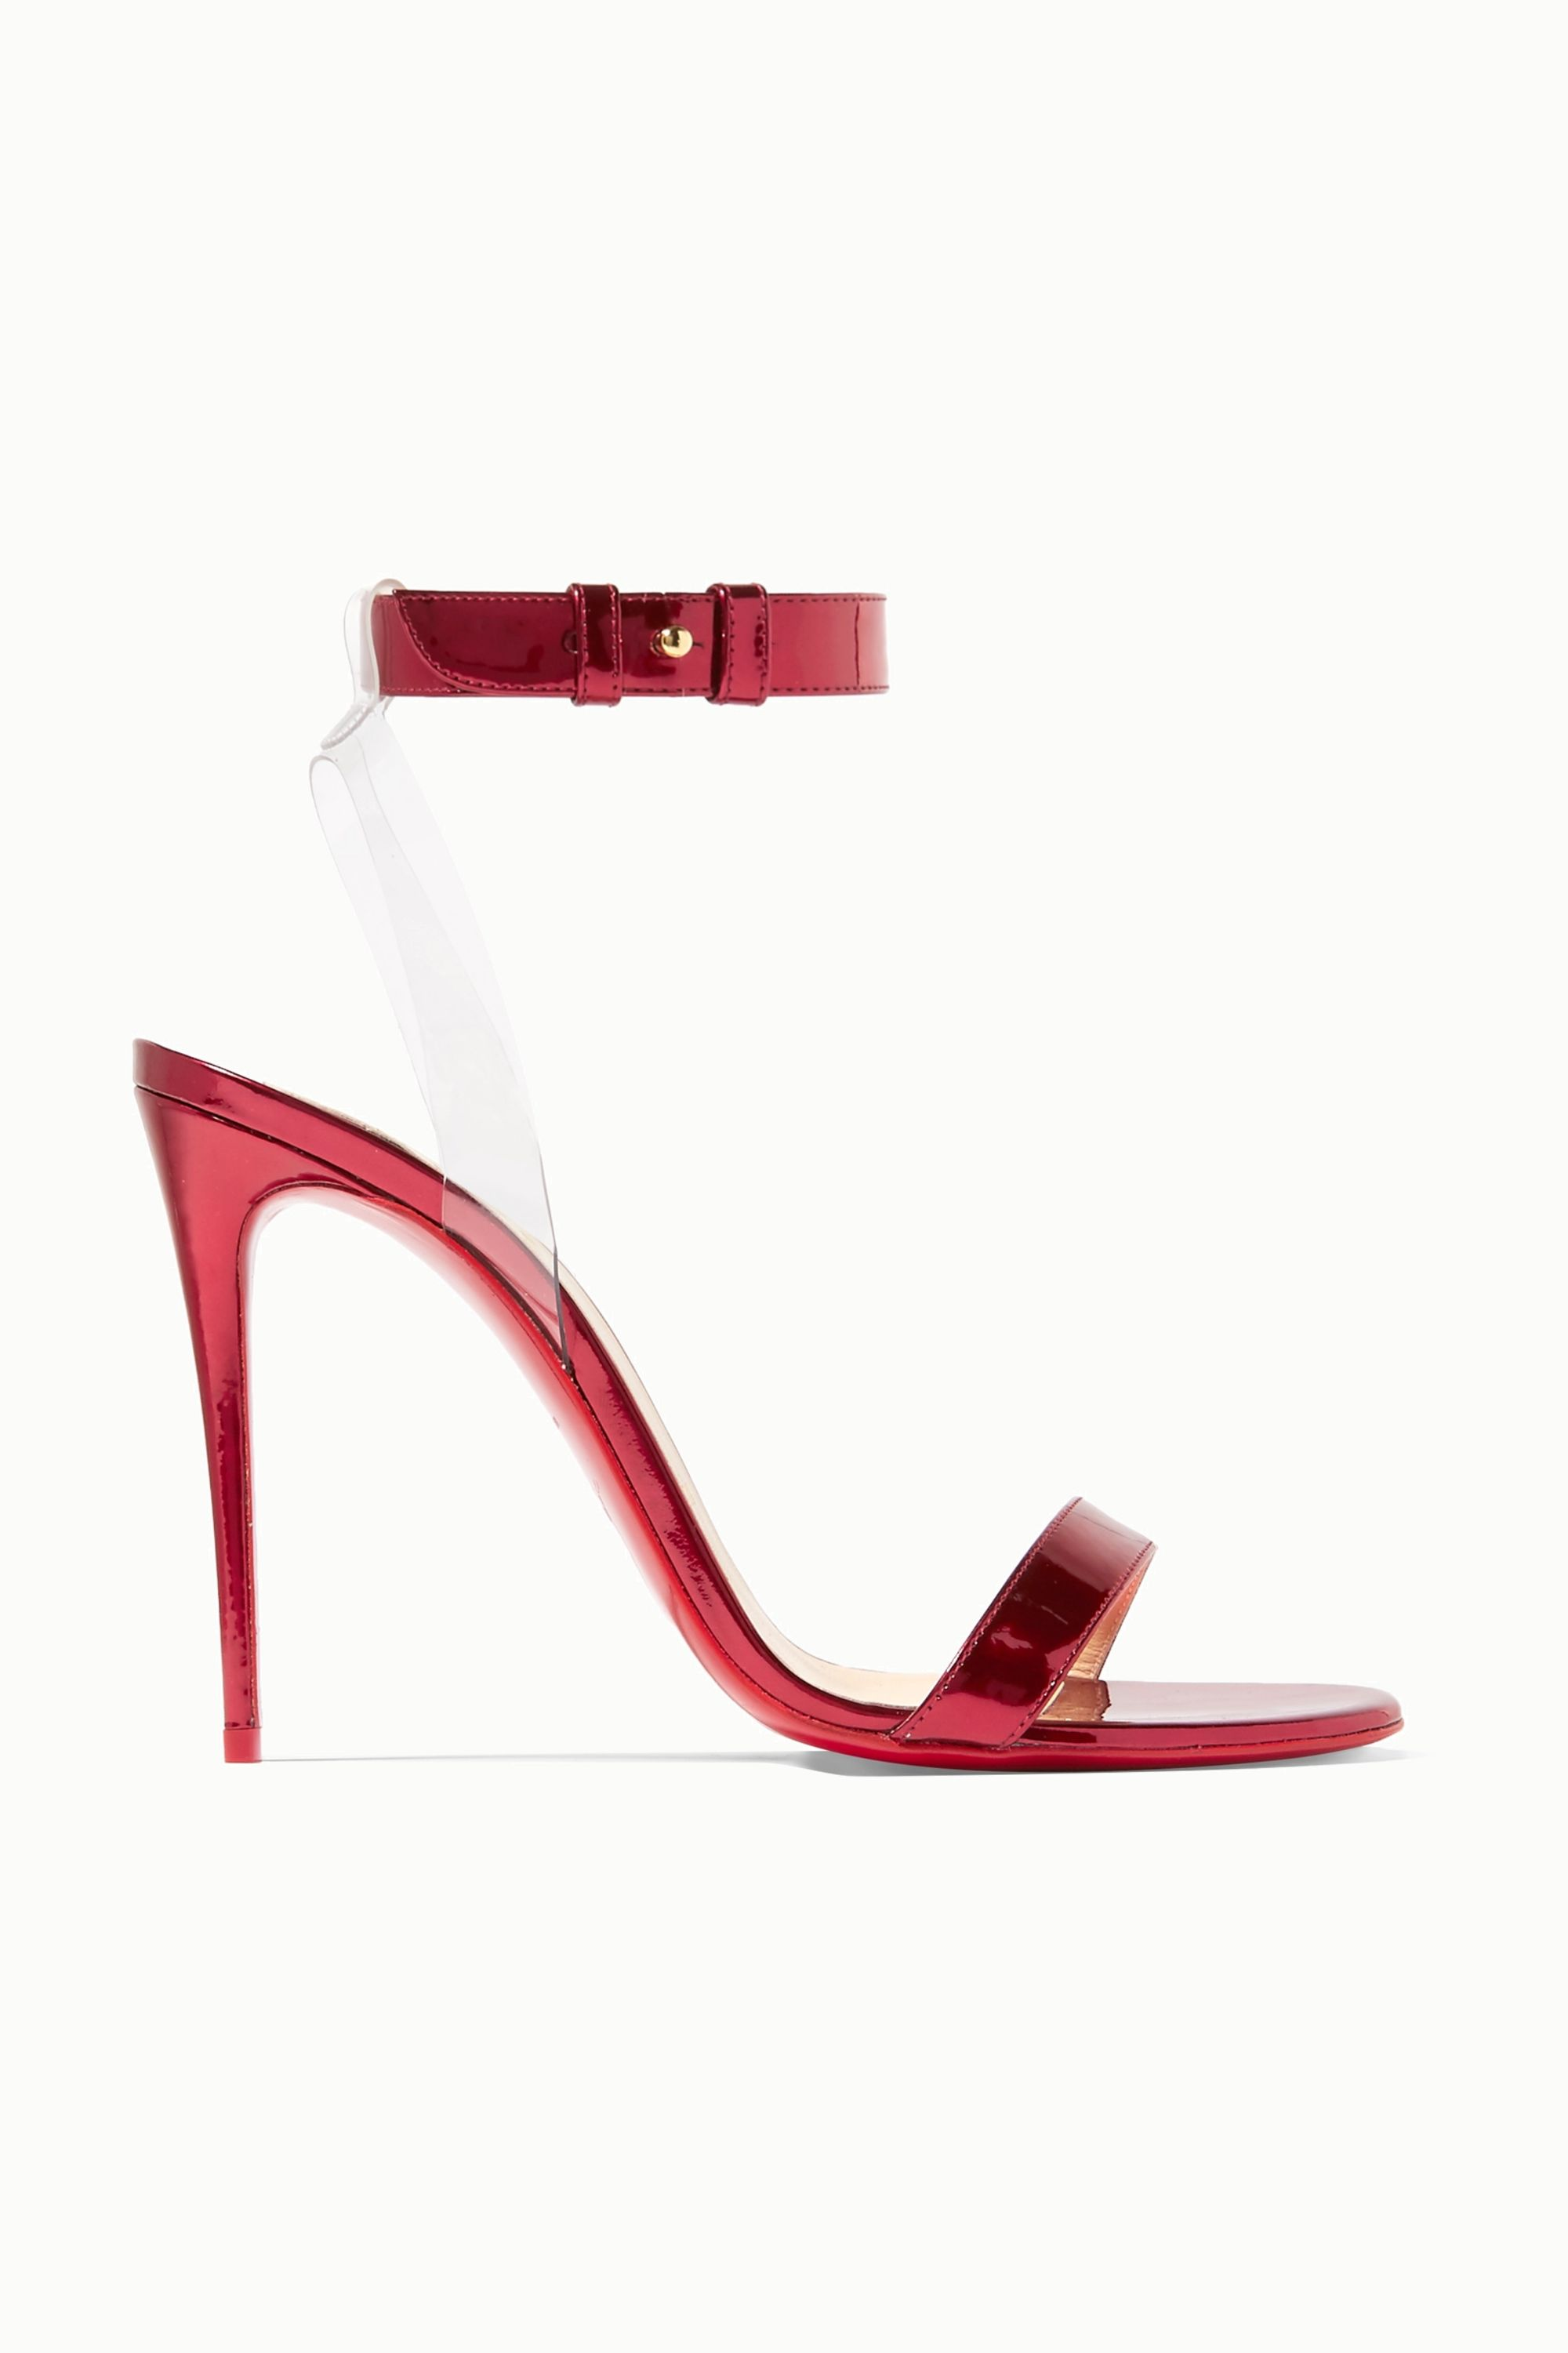 Christian Louboutin Jonatina 100 PVC-trimmed mirrored-leather sandals